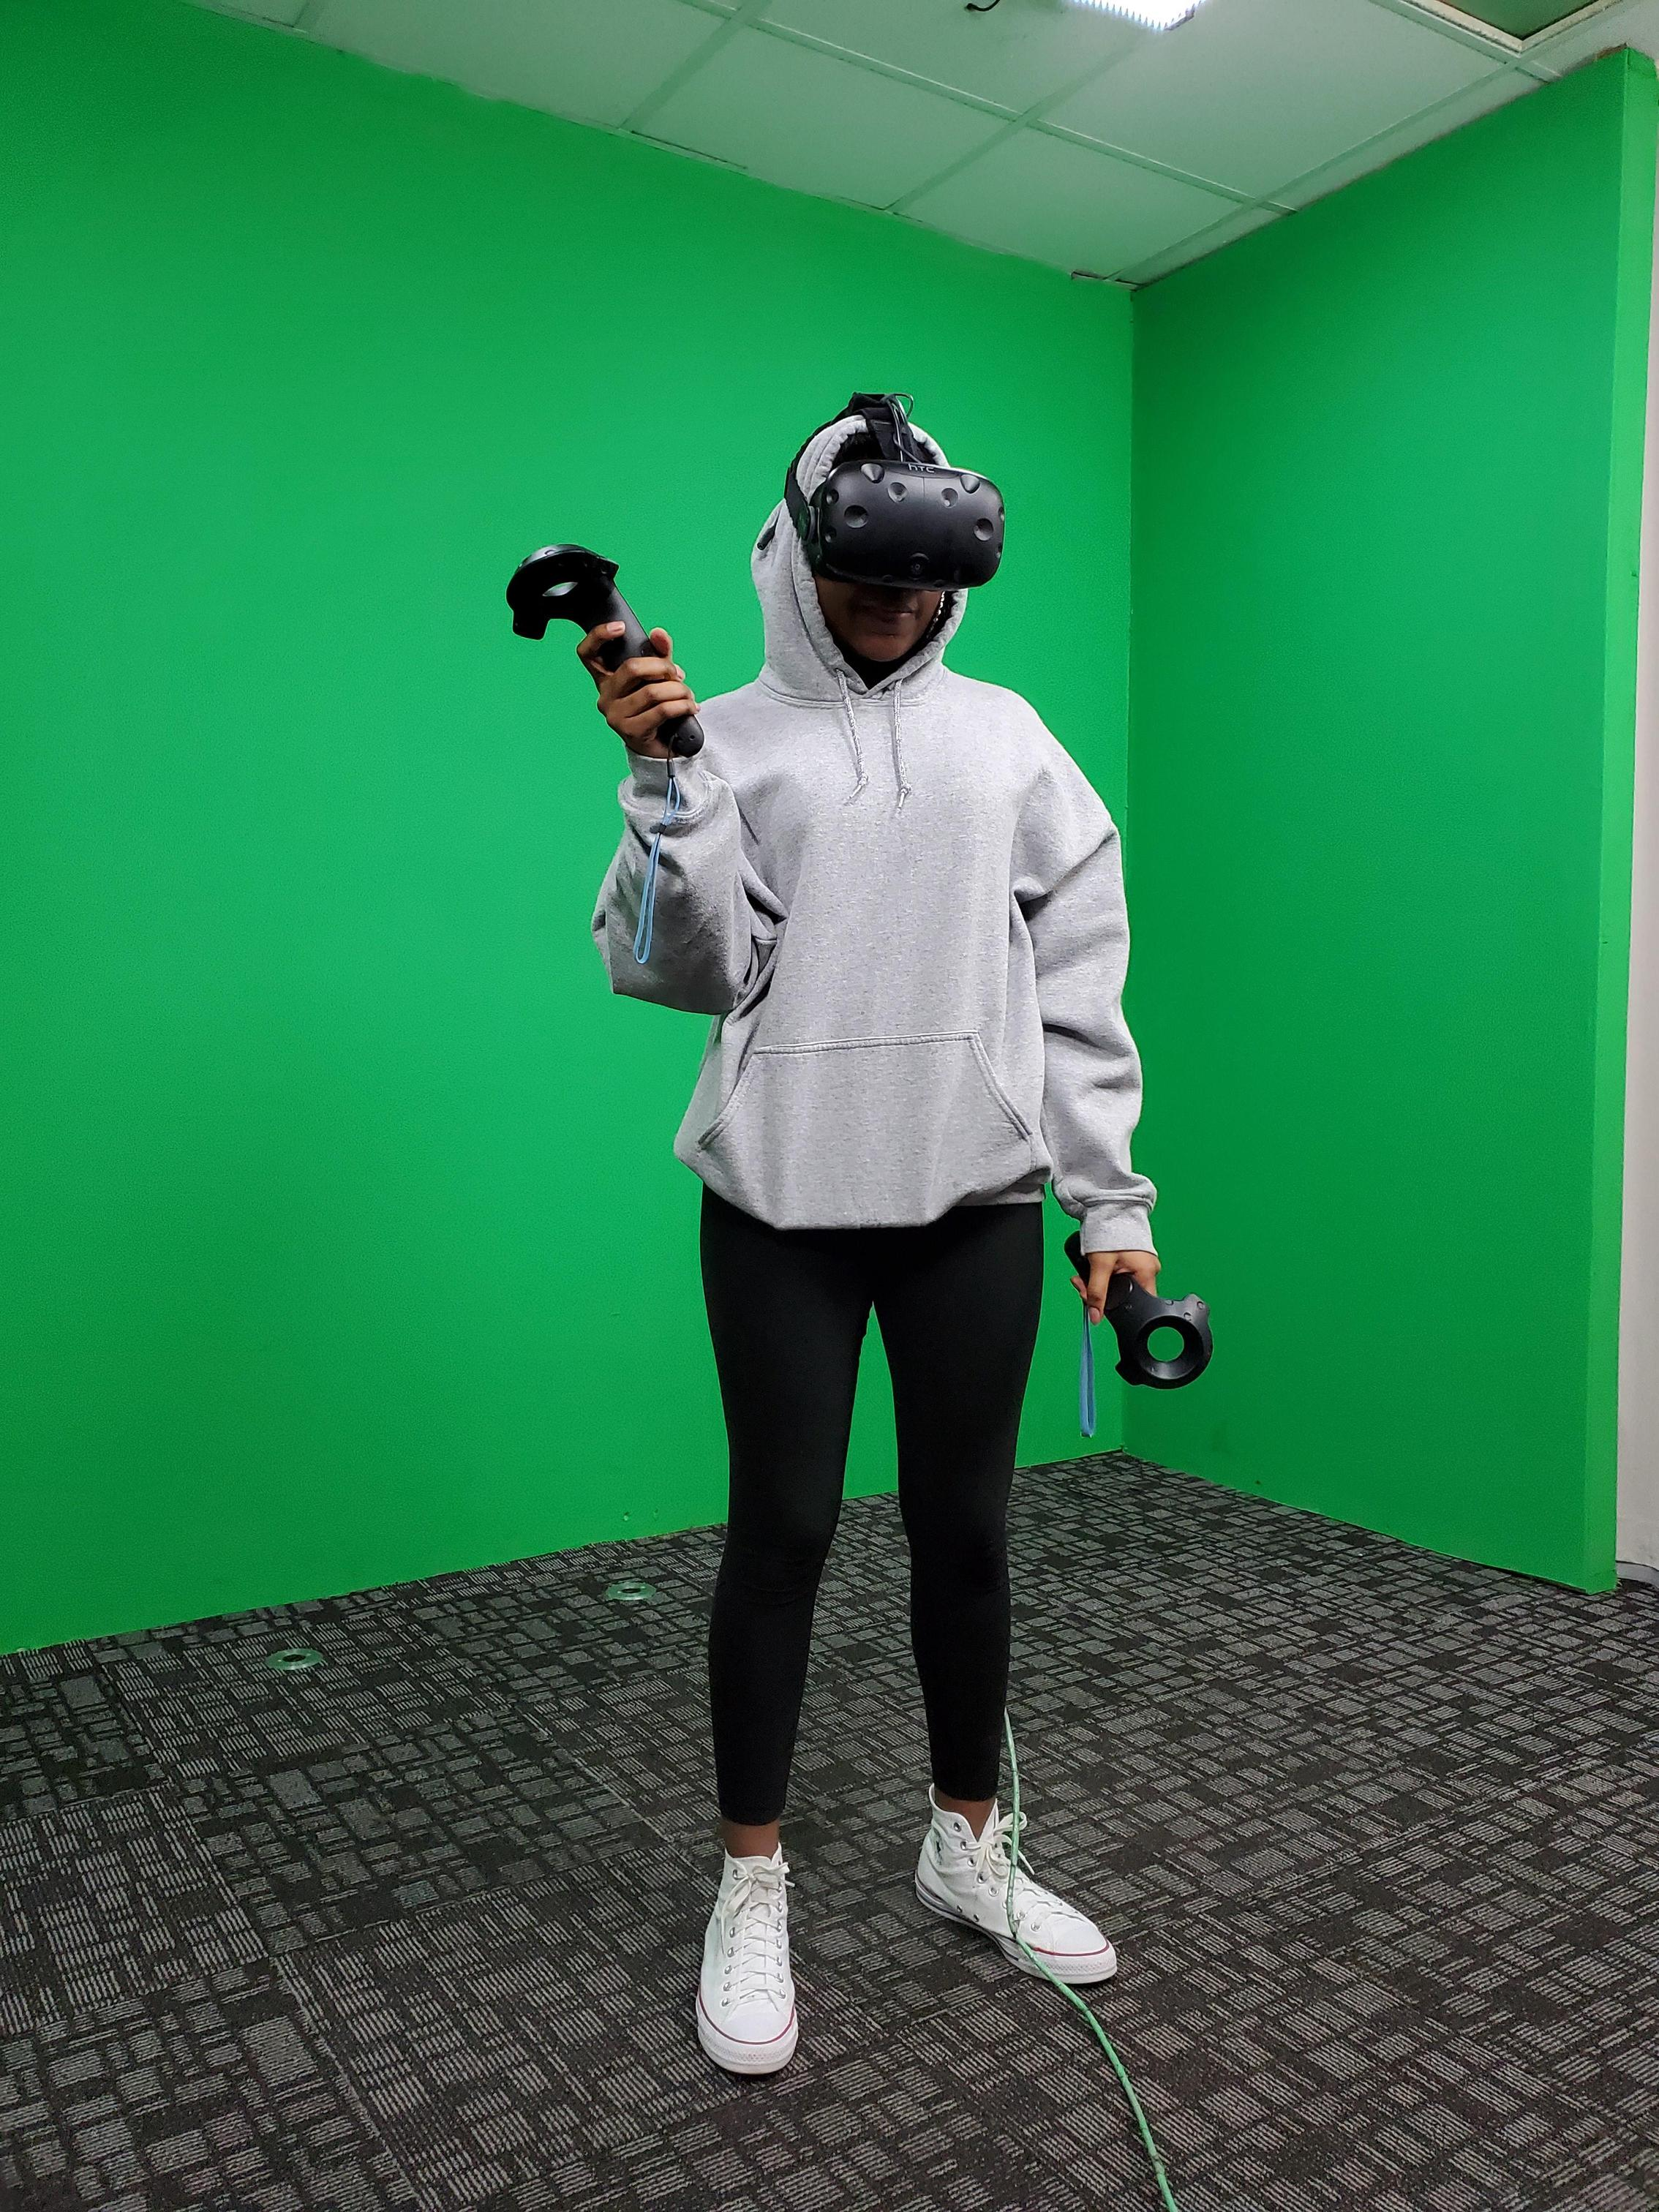 student in vr room